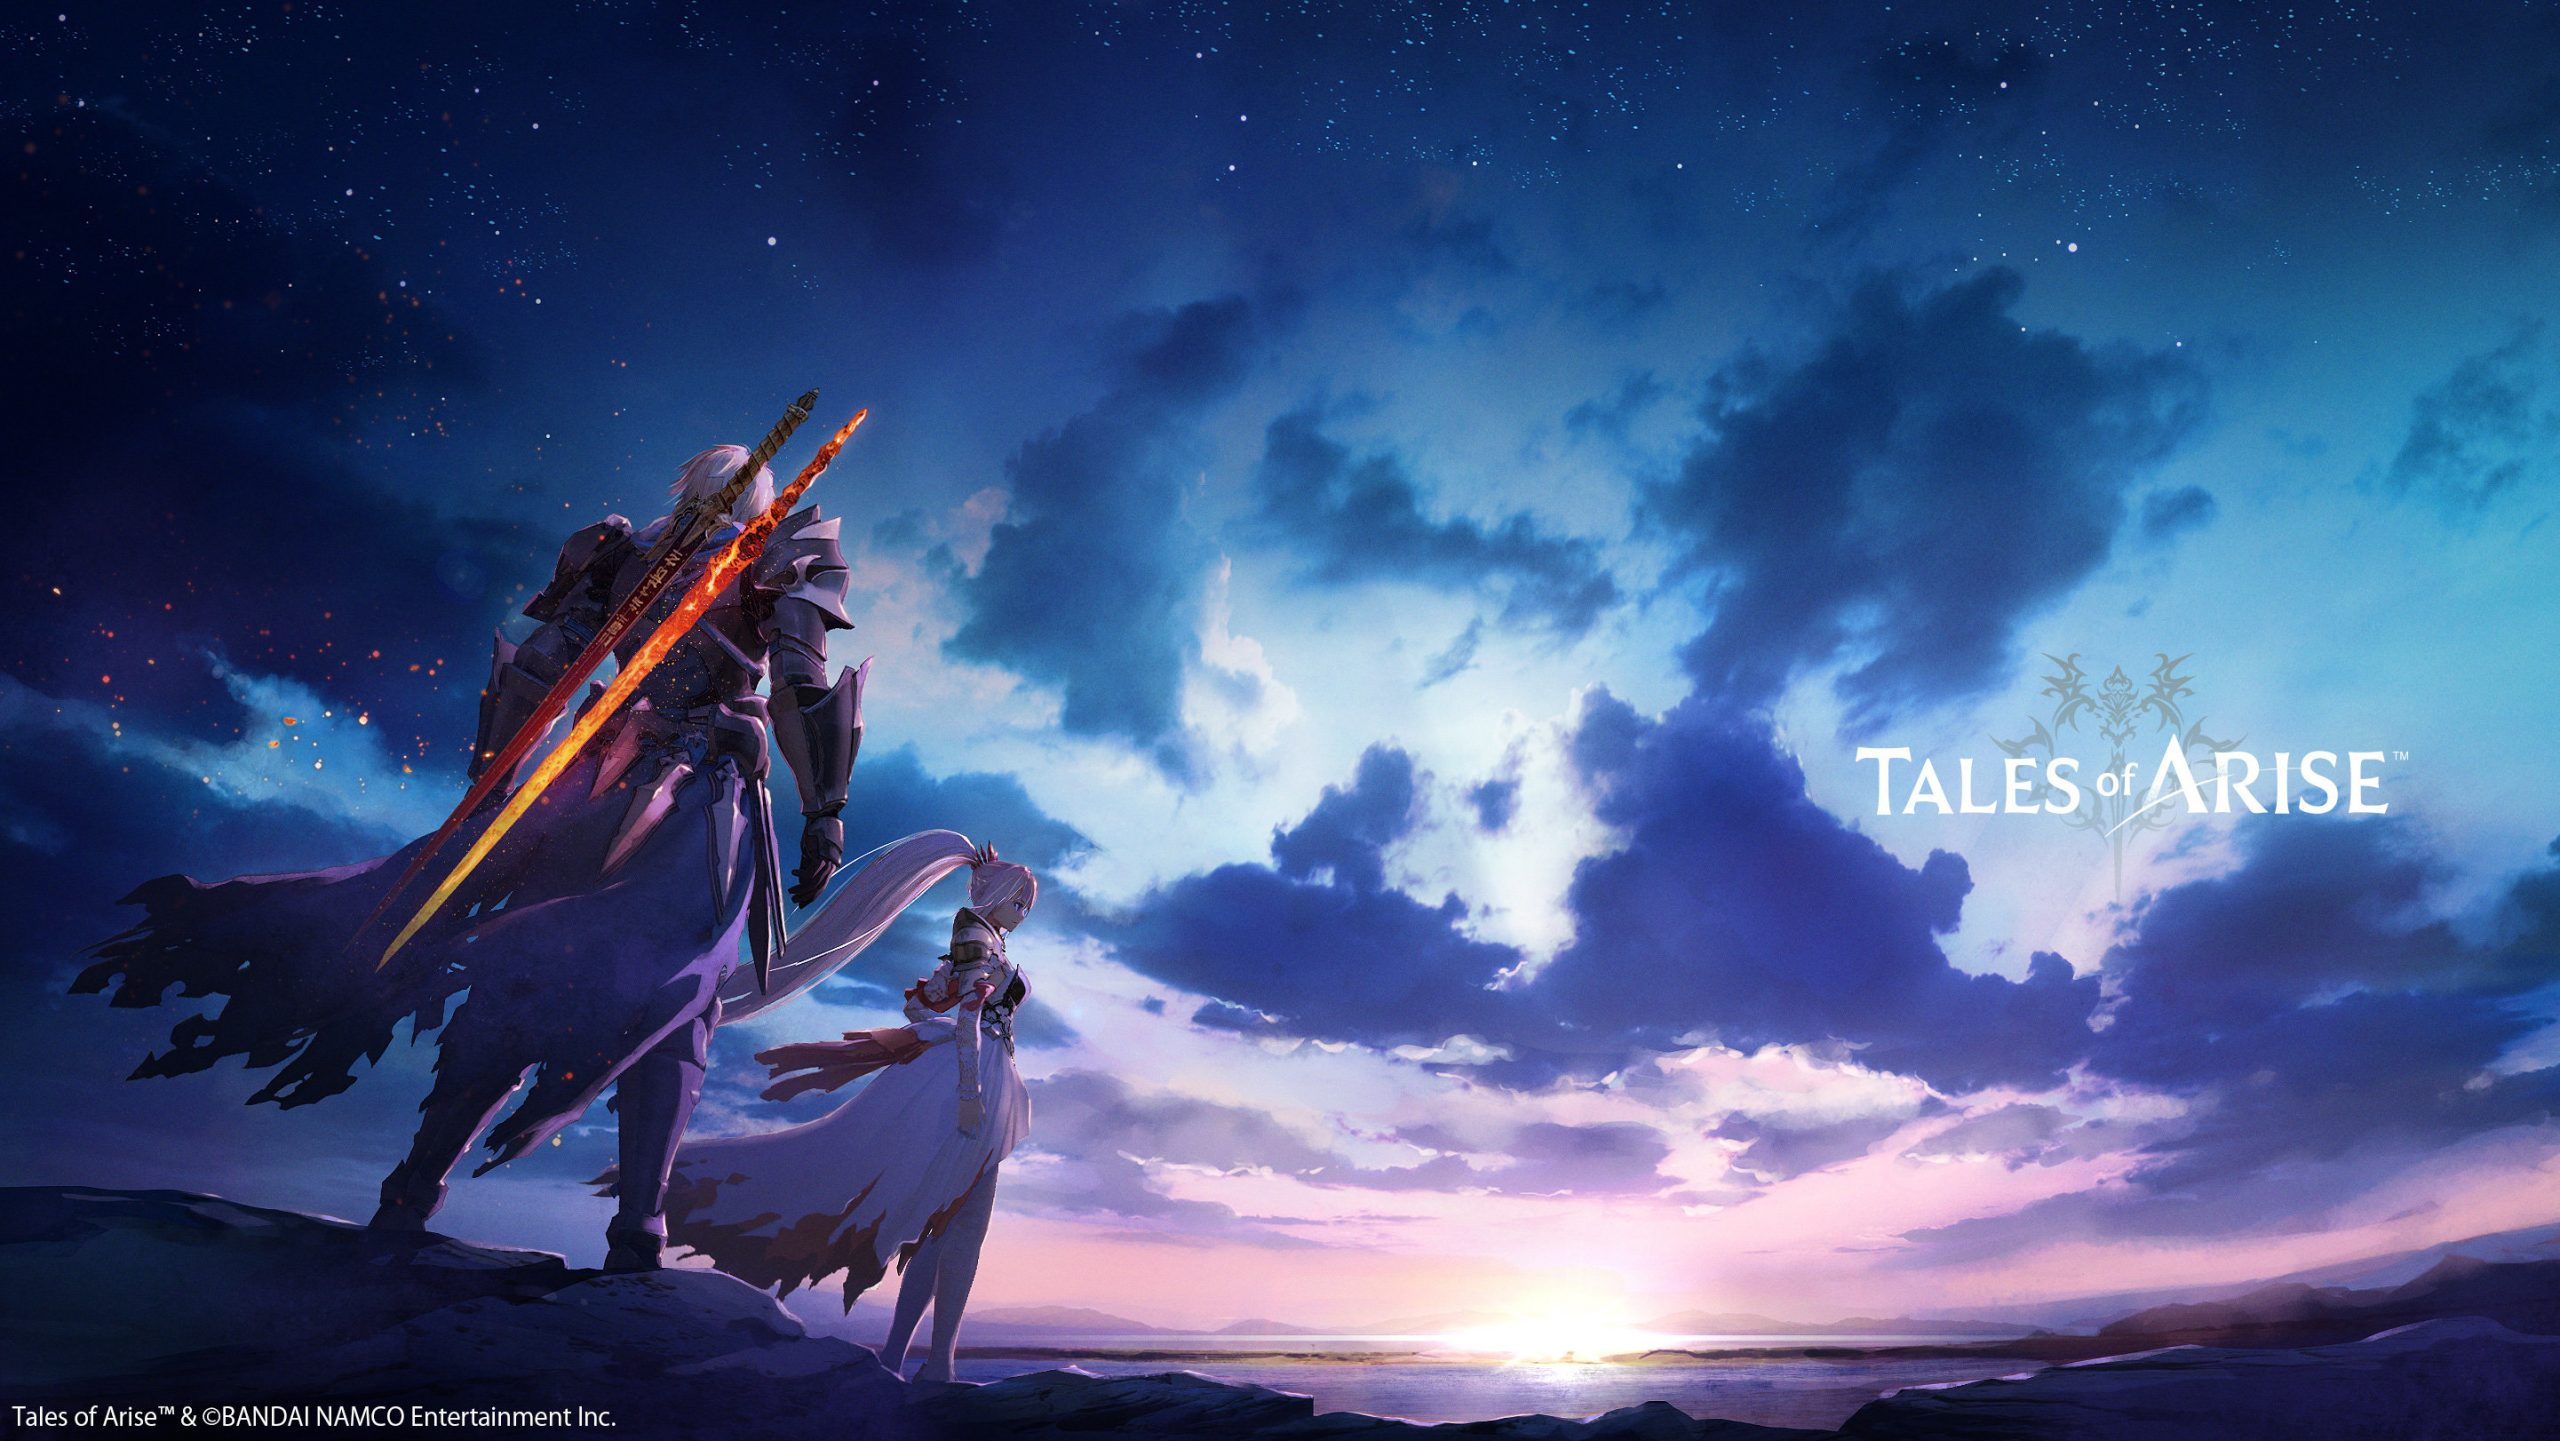 The protagonist of Tales of Arise look out upon a setting sky.